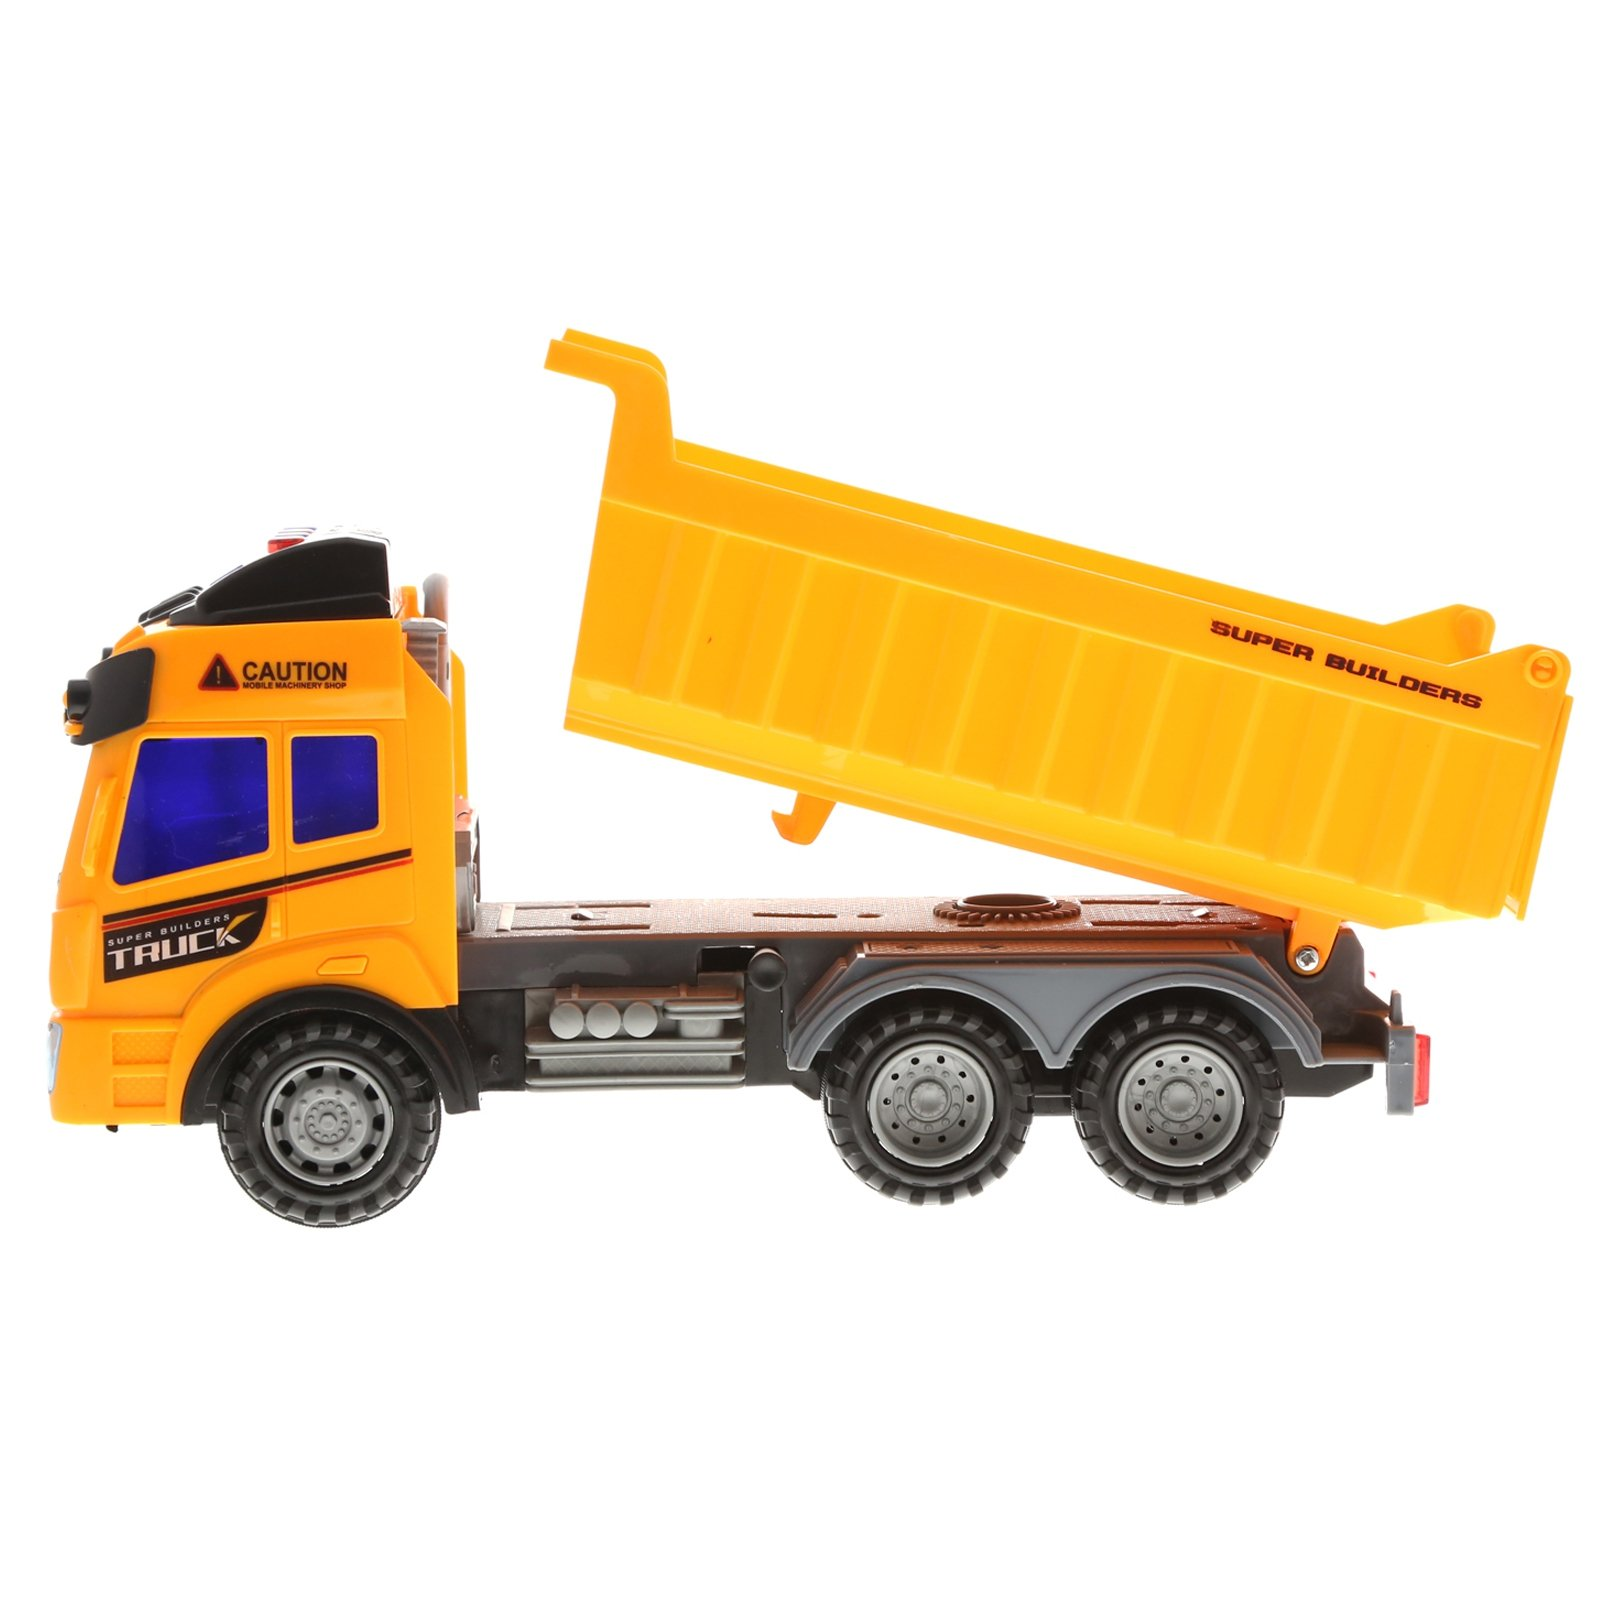 Kidplay Friction Powered Dump Truck Construction Lights and Sounds Kids Toy